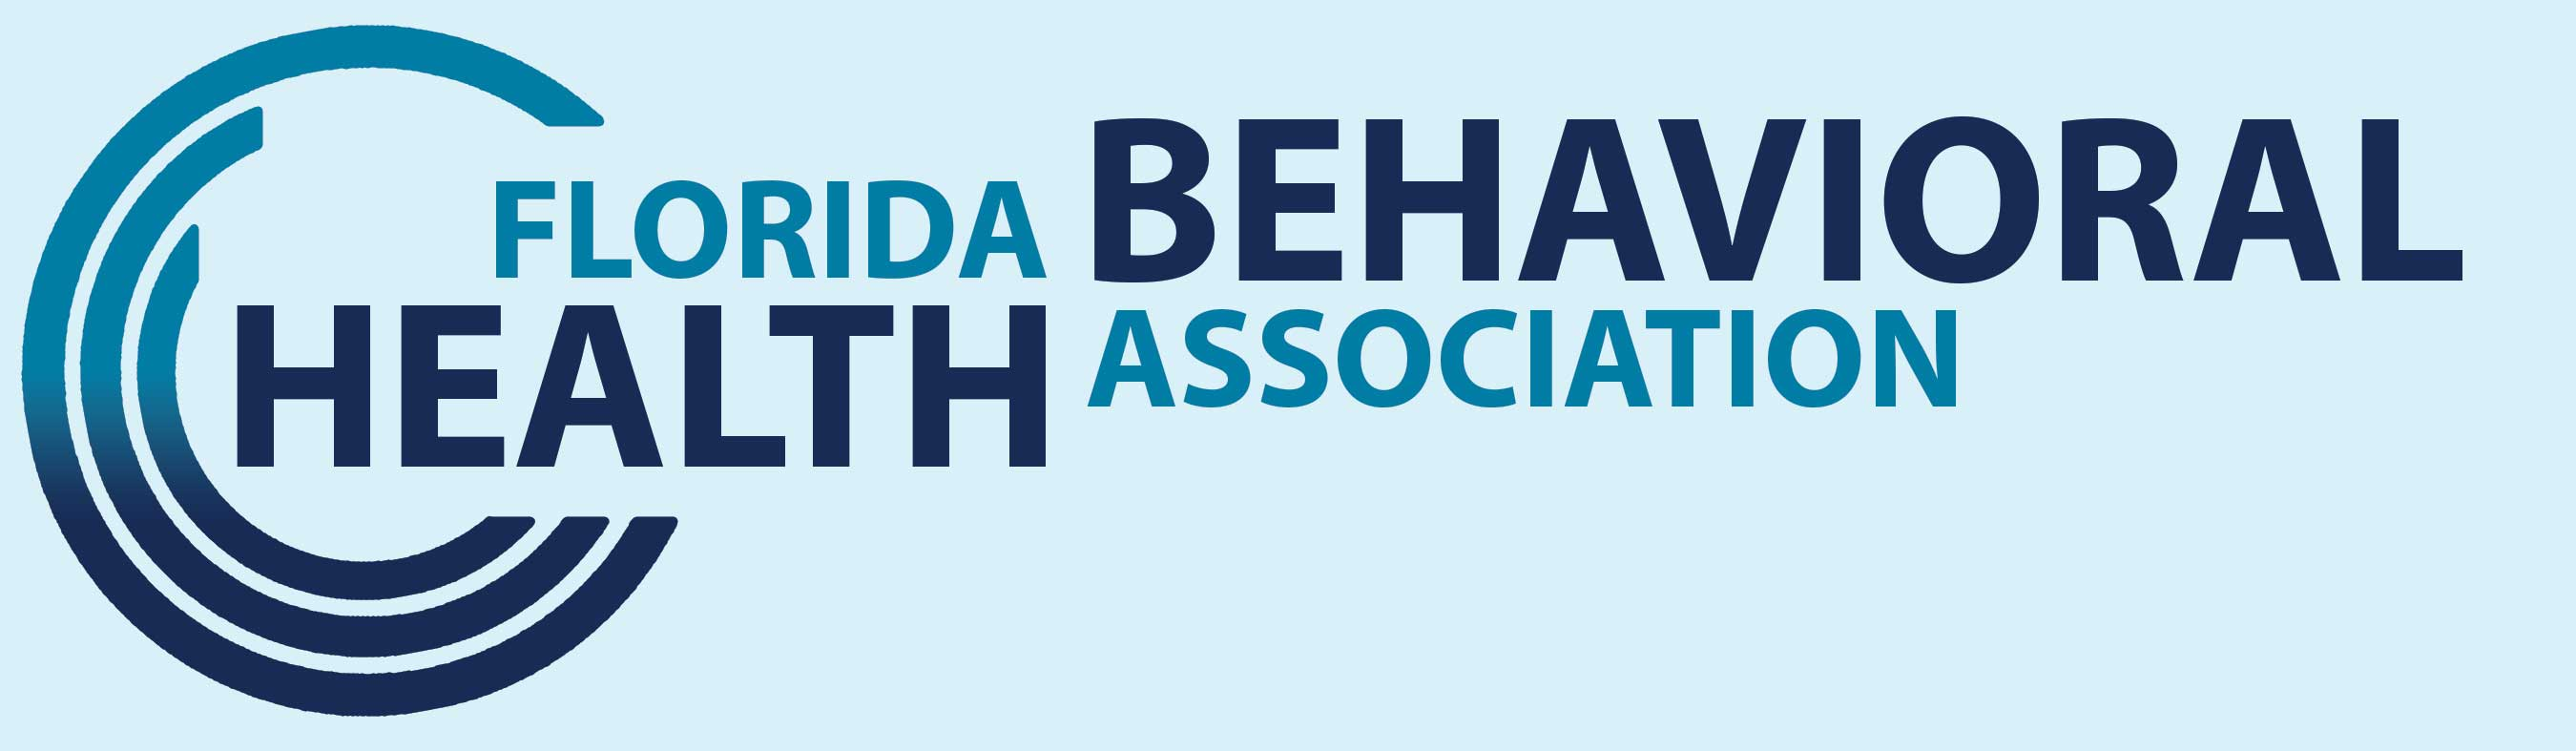 Florida Alcohol And Drug Abuse Association Florida Behavioral